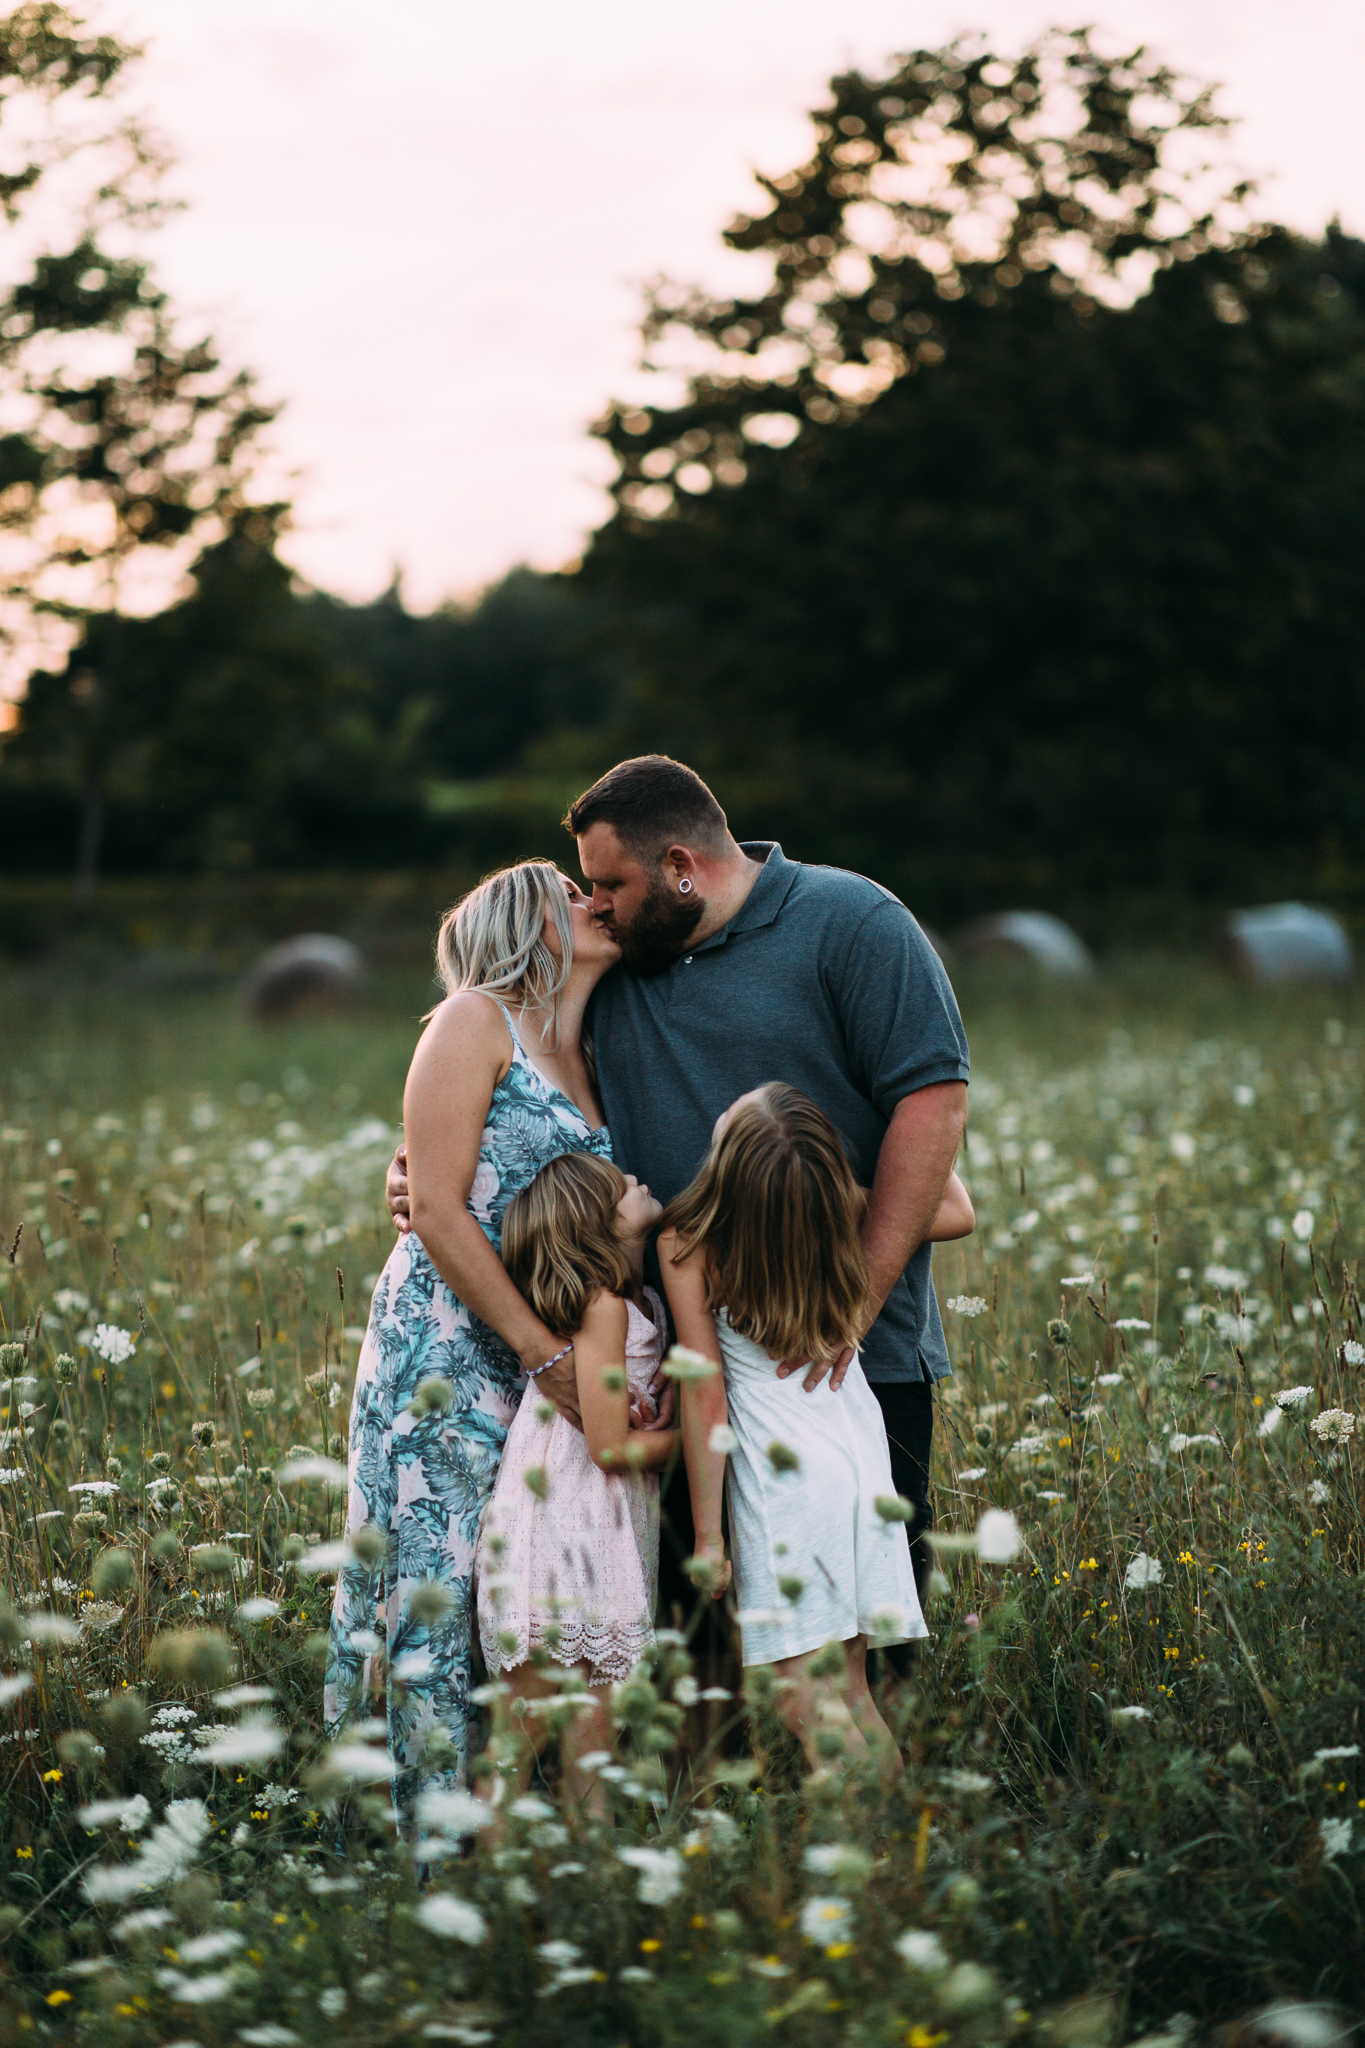 dayton-saco-biddeford-portland-family-lifestyle-photographer-wildflowers-a-barn-hitching-post.jpg